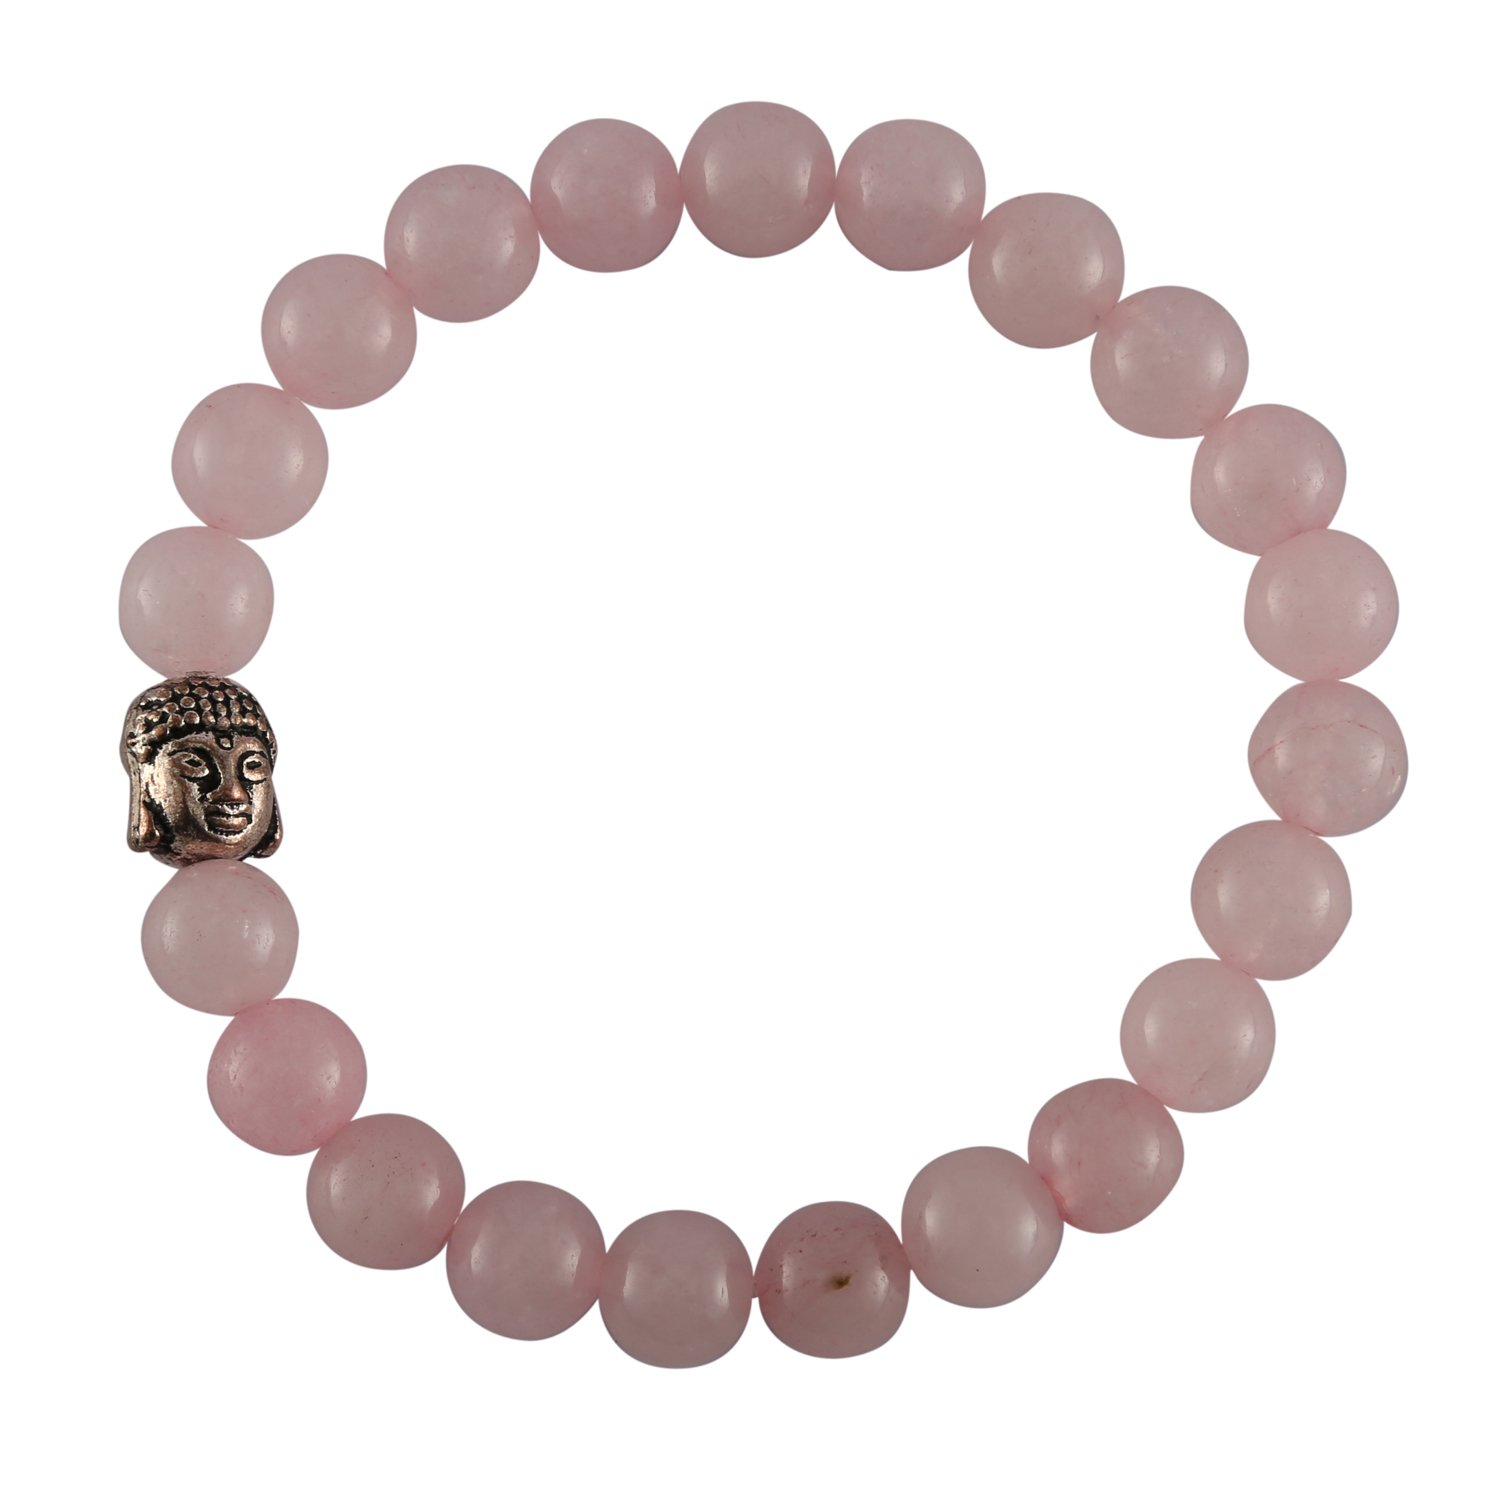 Aatm Gemstone Rose Pink Buddha Charm Bracelet Stone for Love Aatm Collection CNGPC-02